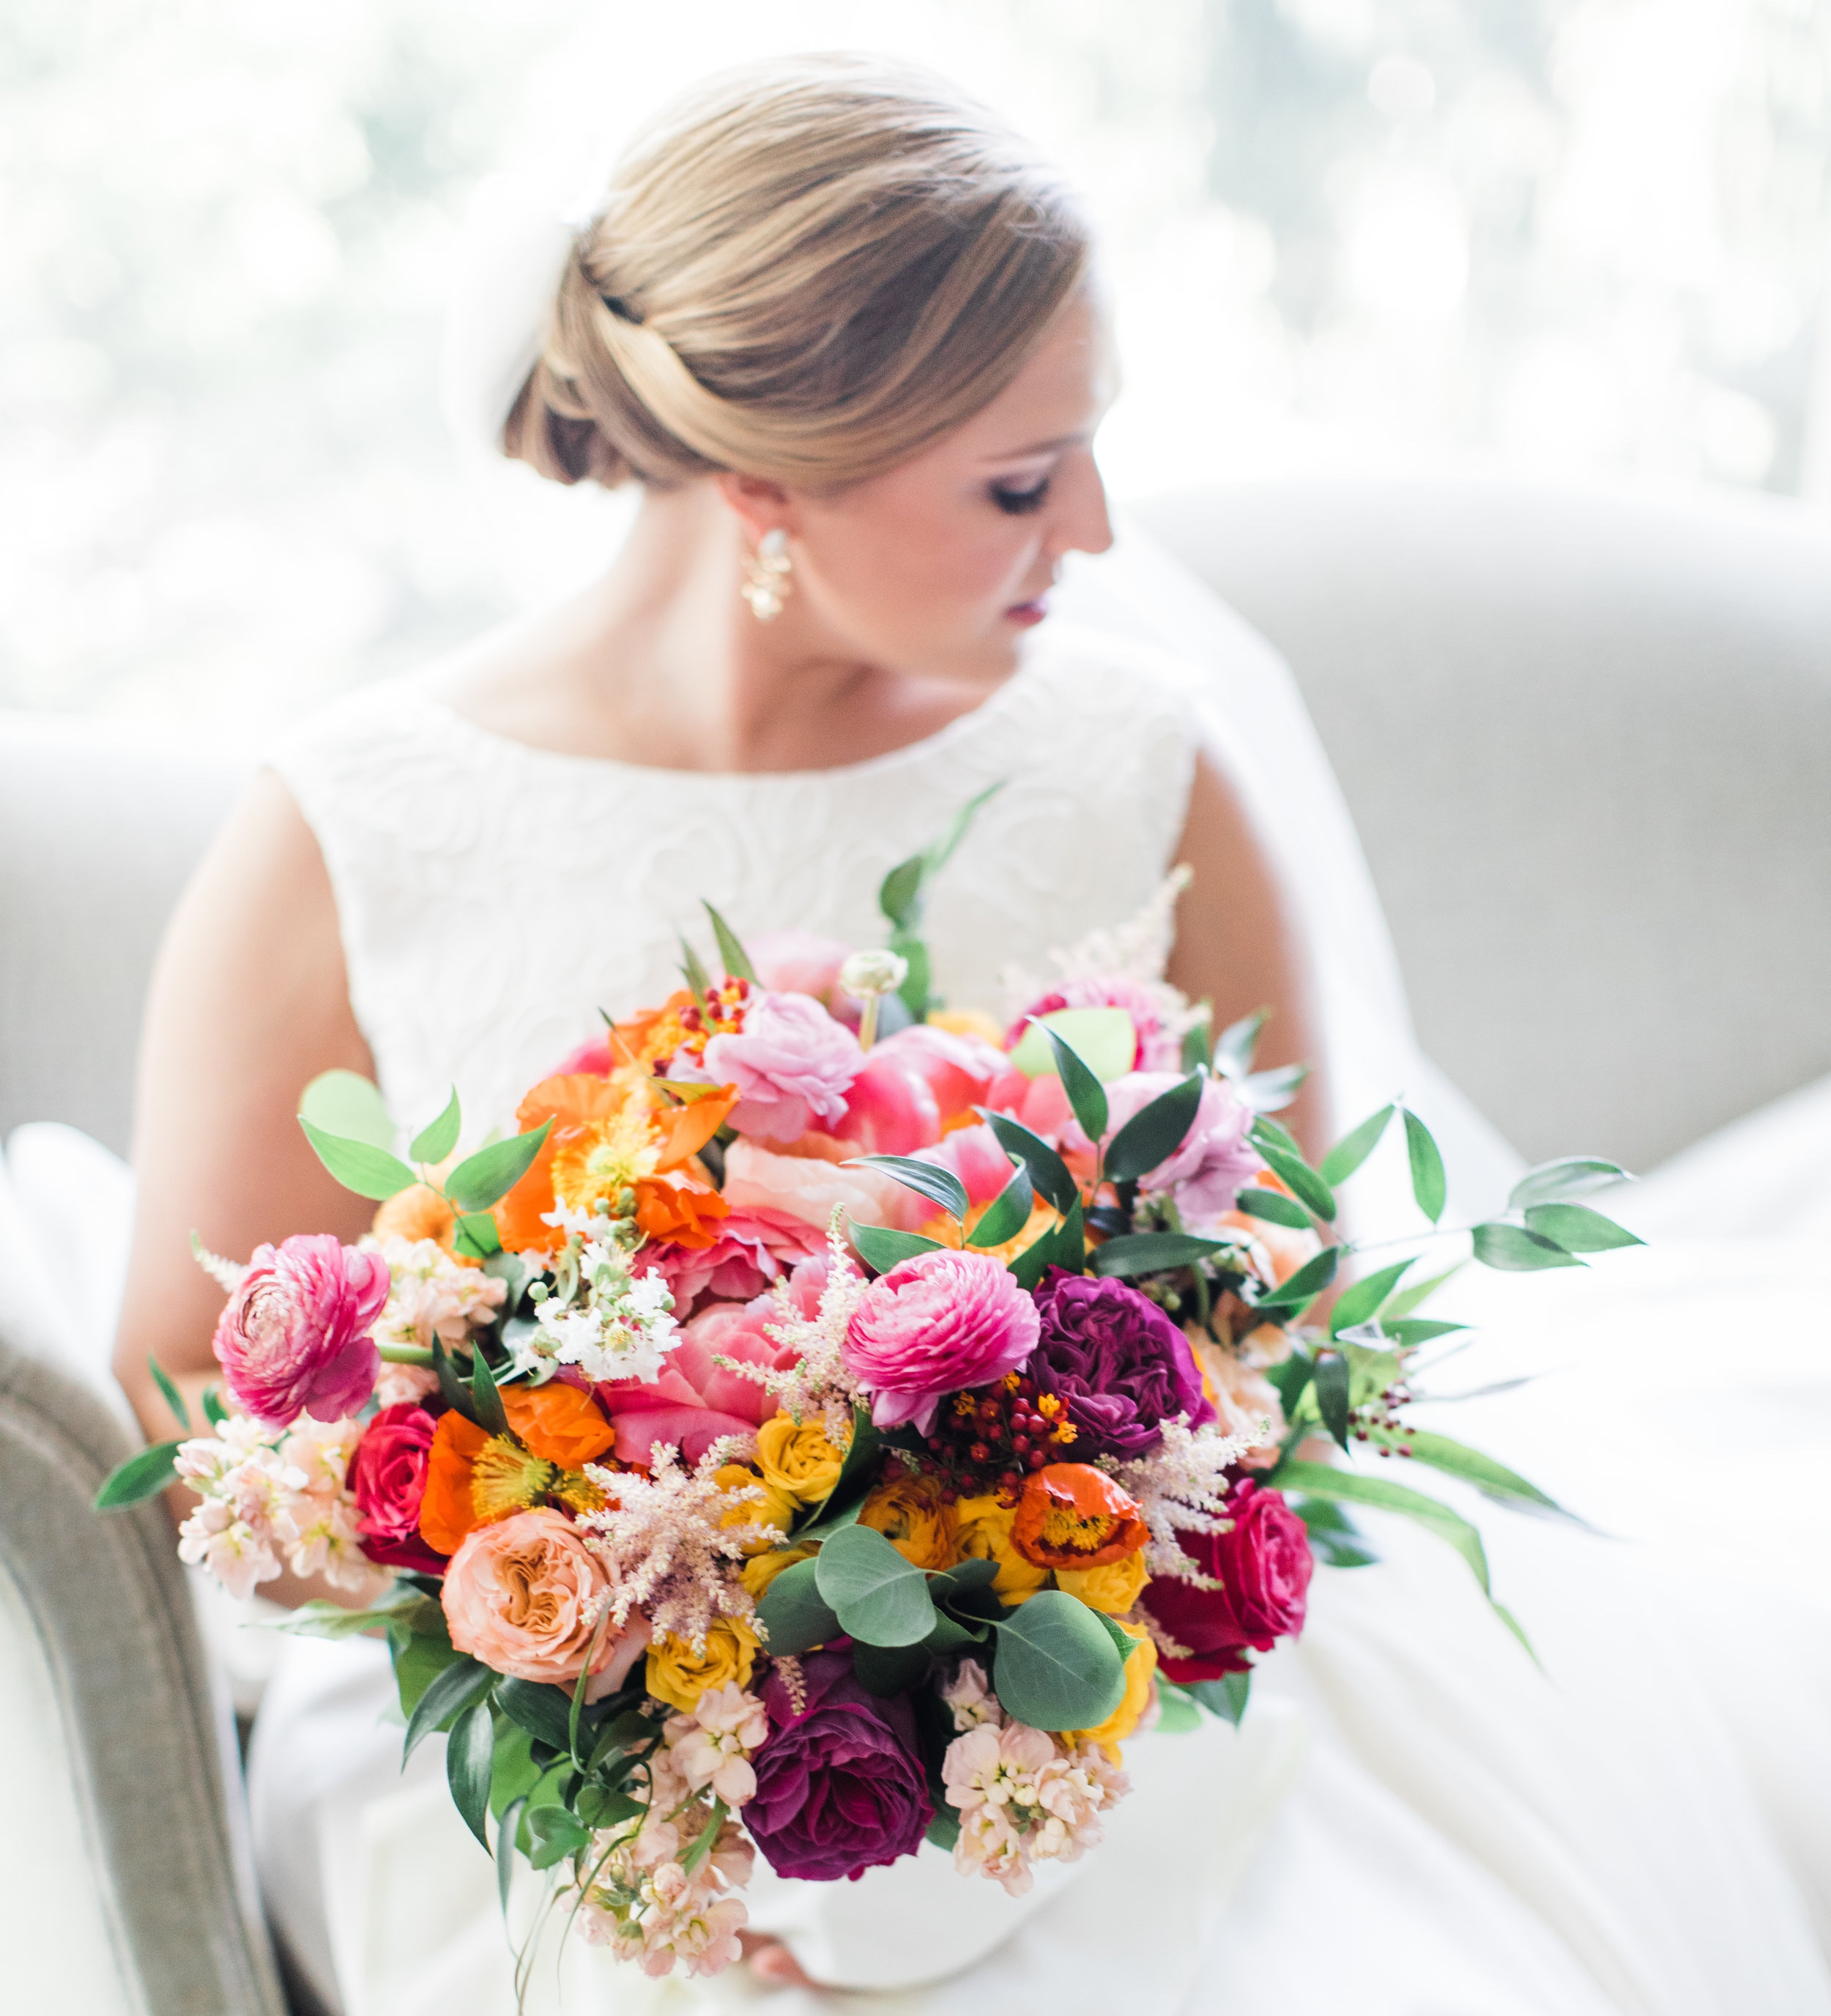 Donate - Wondering what to do with the flowers after your wedding or event? We would love to help!